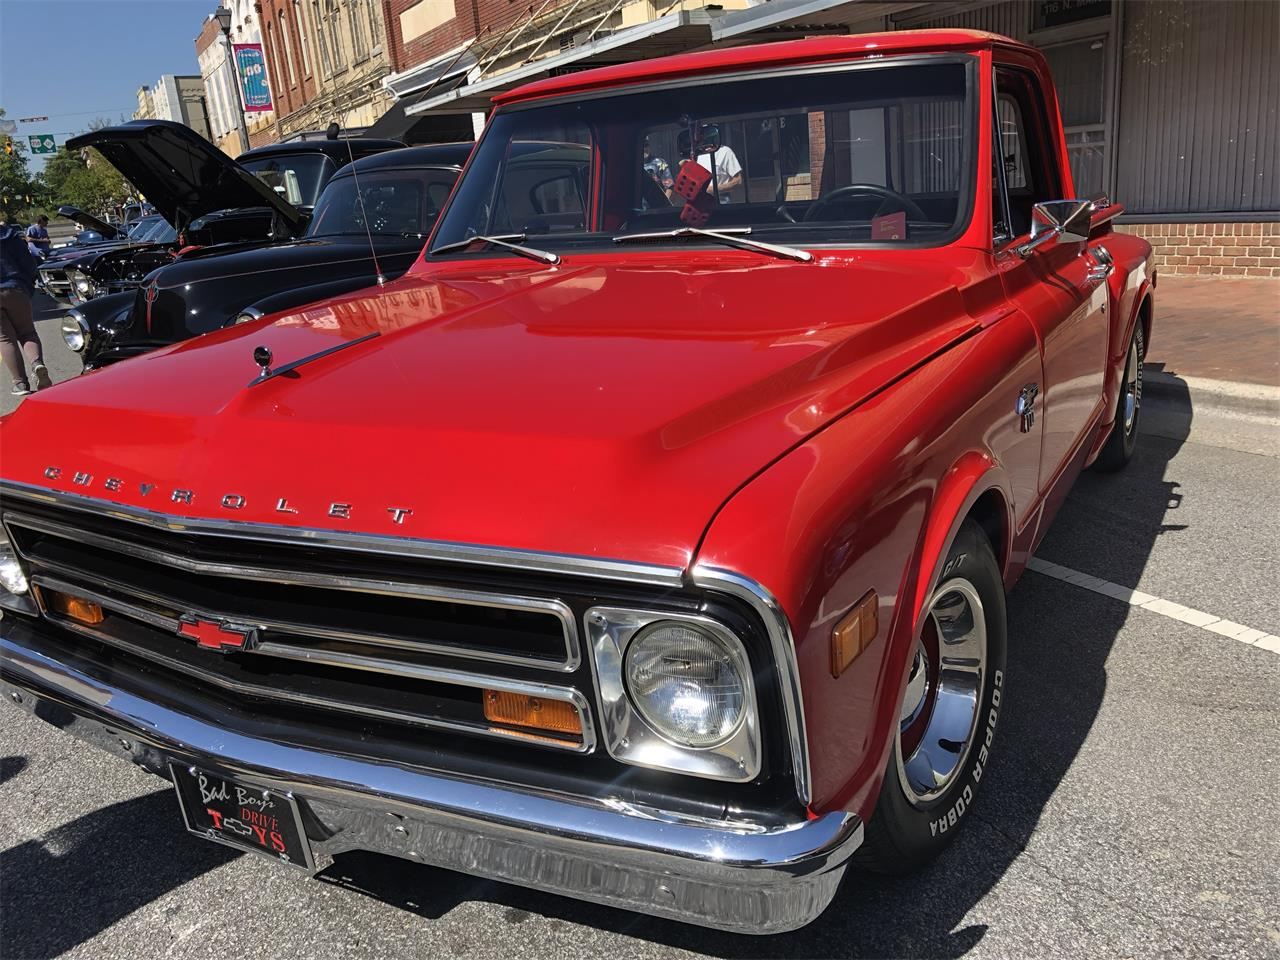 Large Picture of Classic 1968 C10 located in Macclesfield North Carolina - $38,000.00 Offered by a Private Seller - Q46B